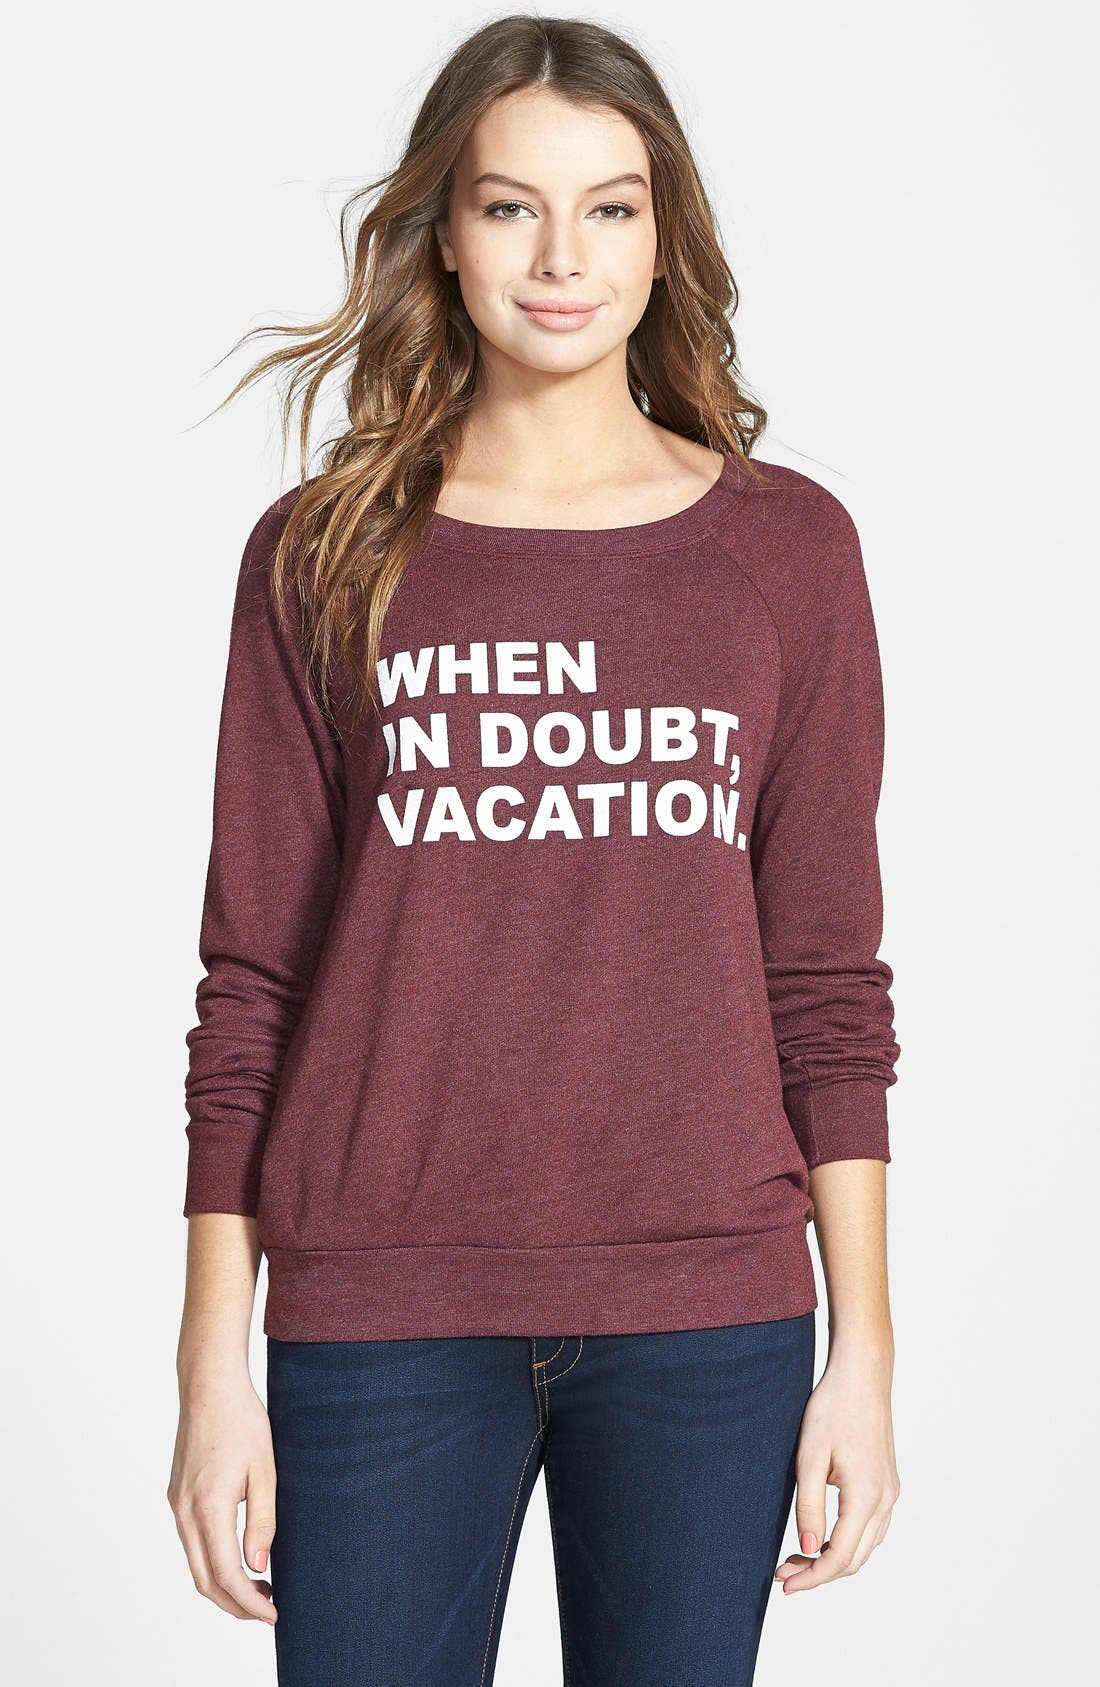 Alternate Image 1 Selected - Project Social T 'When in Doubt, Vacation' Raglan Sleeve Sweatshirt